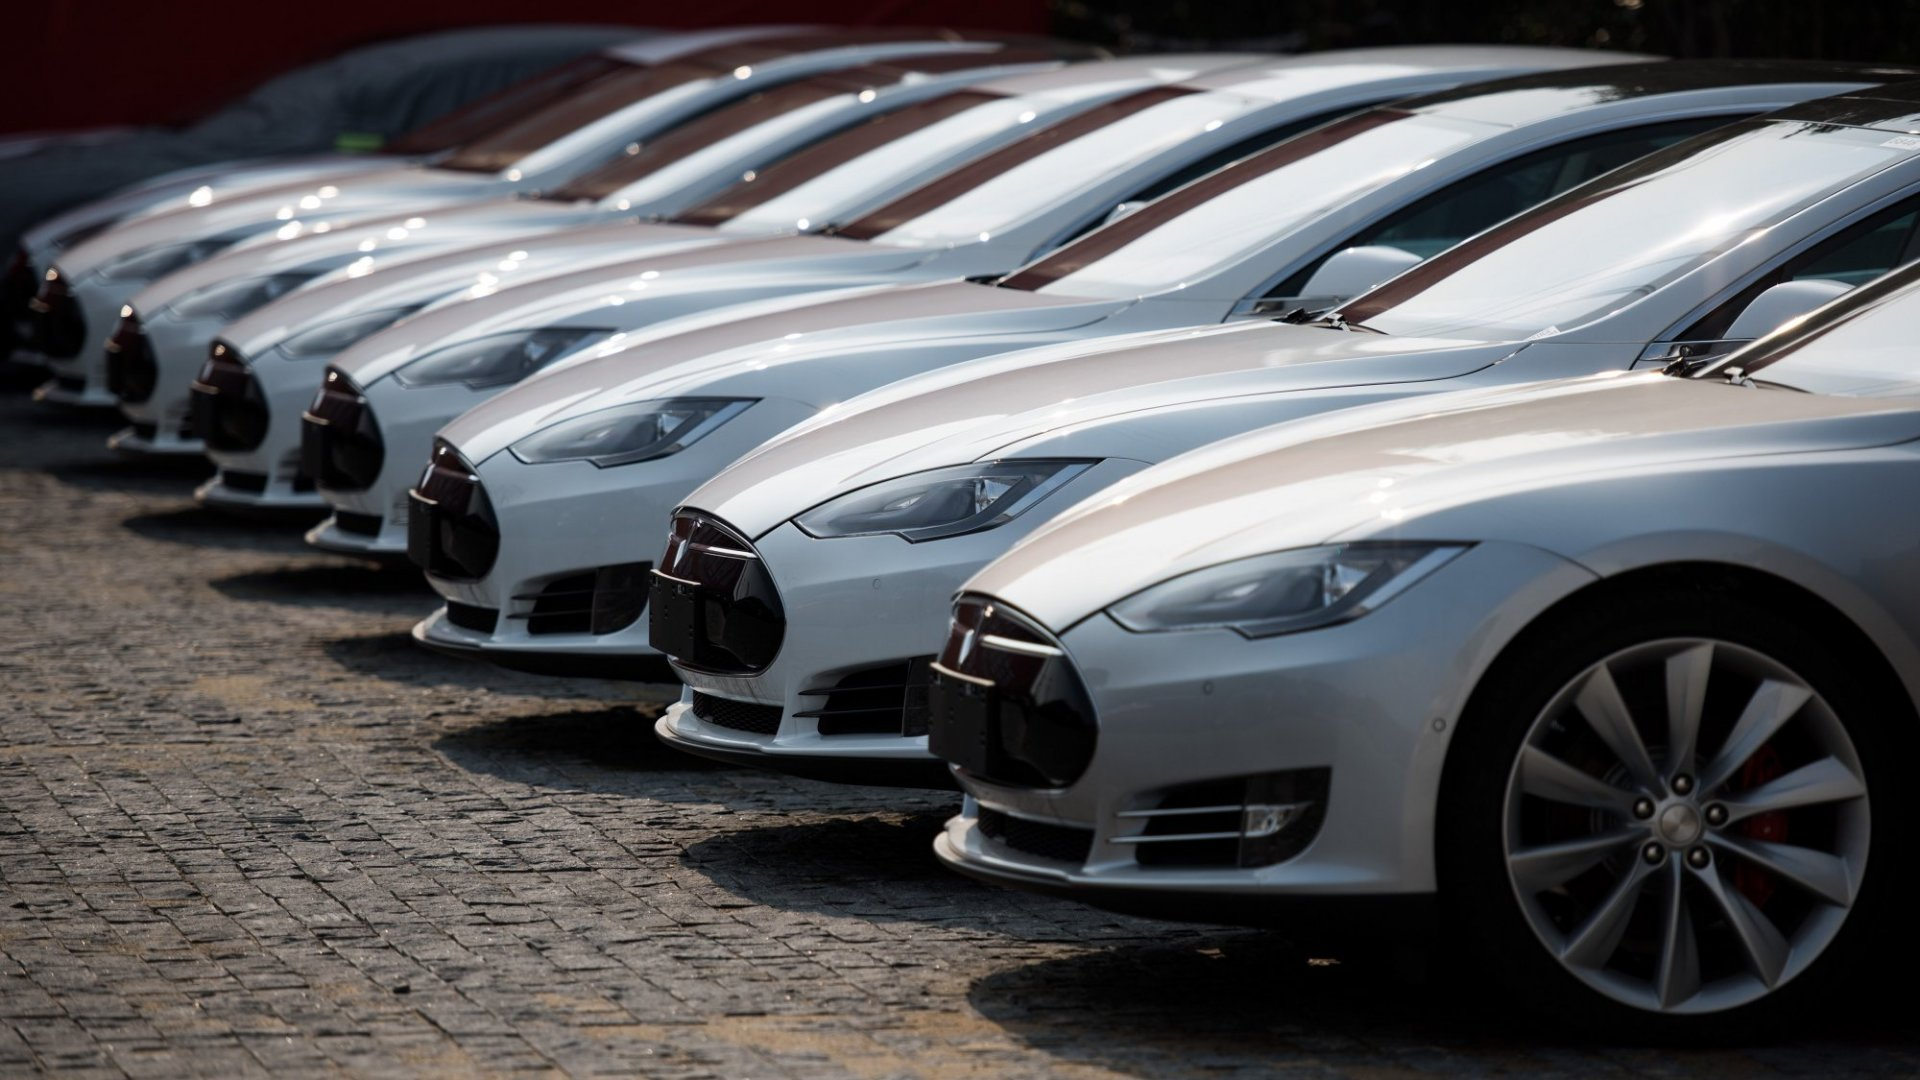 Why Electric Cars Are Still Years Away From Wide Adoption